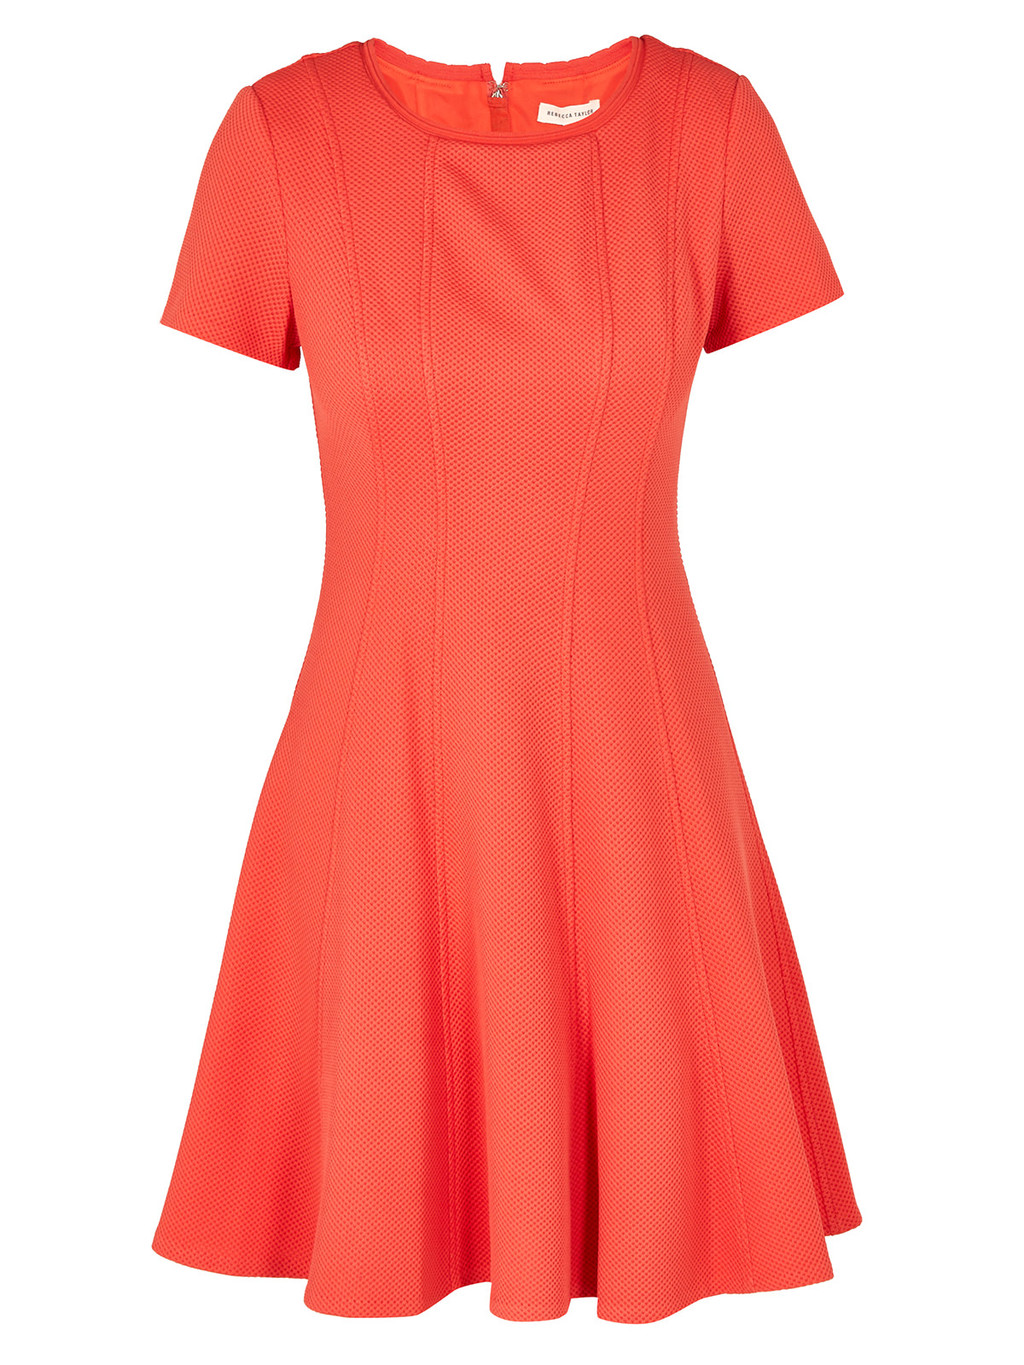 Short Sleeve Knit Pique Dress - pattern: plain; predominant colour: coral; occasions: evening; length: just above the knee; fit: fitted at waist & bust; style: fit & flare; fibres: polyester/polyamide - stretch; neckline: crew; sleeve length: short sleeve; sleeve style: standard; pattern type: fabric; texture group: jersey - stretchy/drapey; season: s/s 2016; wardrobe: event